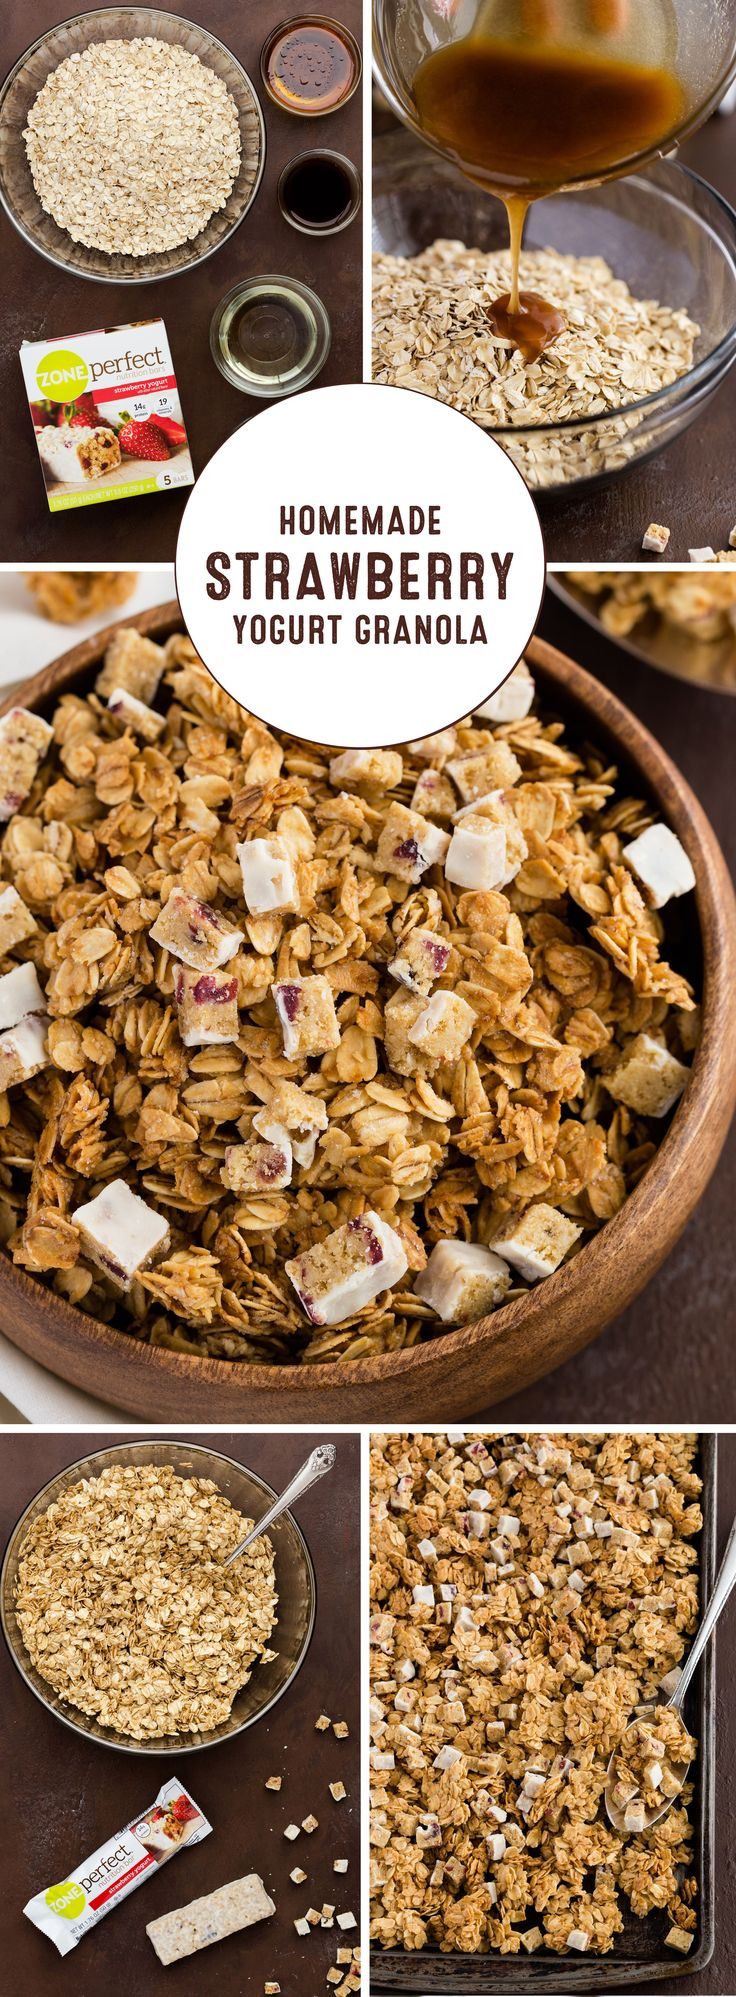 Freshen up your snacking in the new year by making this recipe for Homemade Strawberry Yogurt Granola! You can have a flavorful and wholesome morning treat ready for your busy day by prepping this crunchy topping ahead of time. Plus, using oats, honey, and chopped ZonePerfect Nutrition Bars, it couldn't be easier to making sticking to your nutrition goals simply delicious.